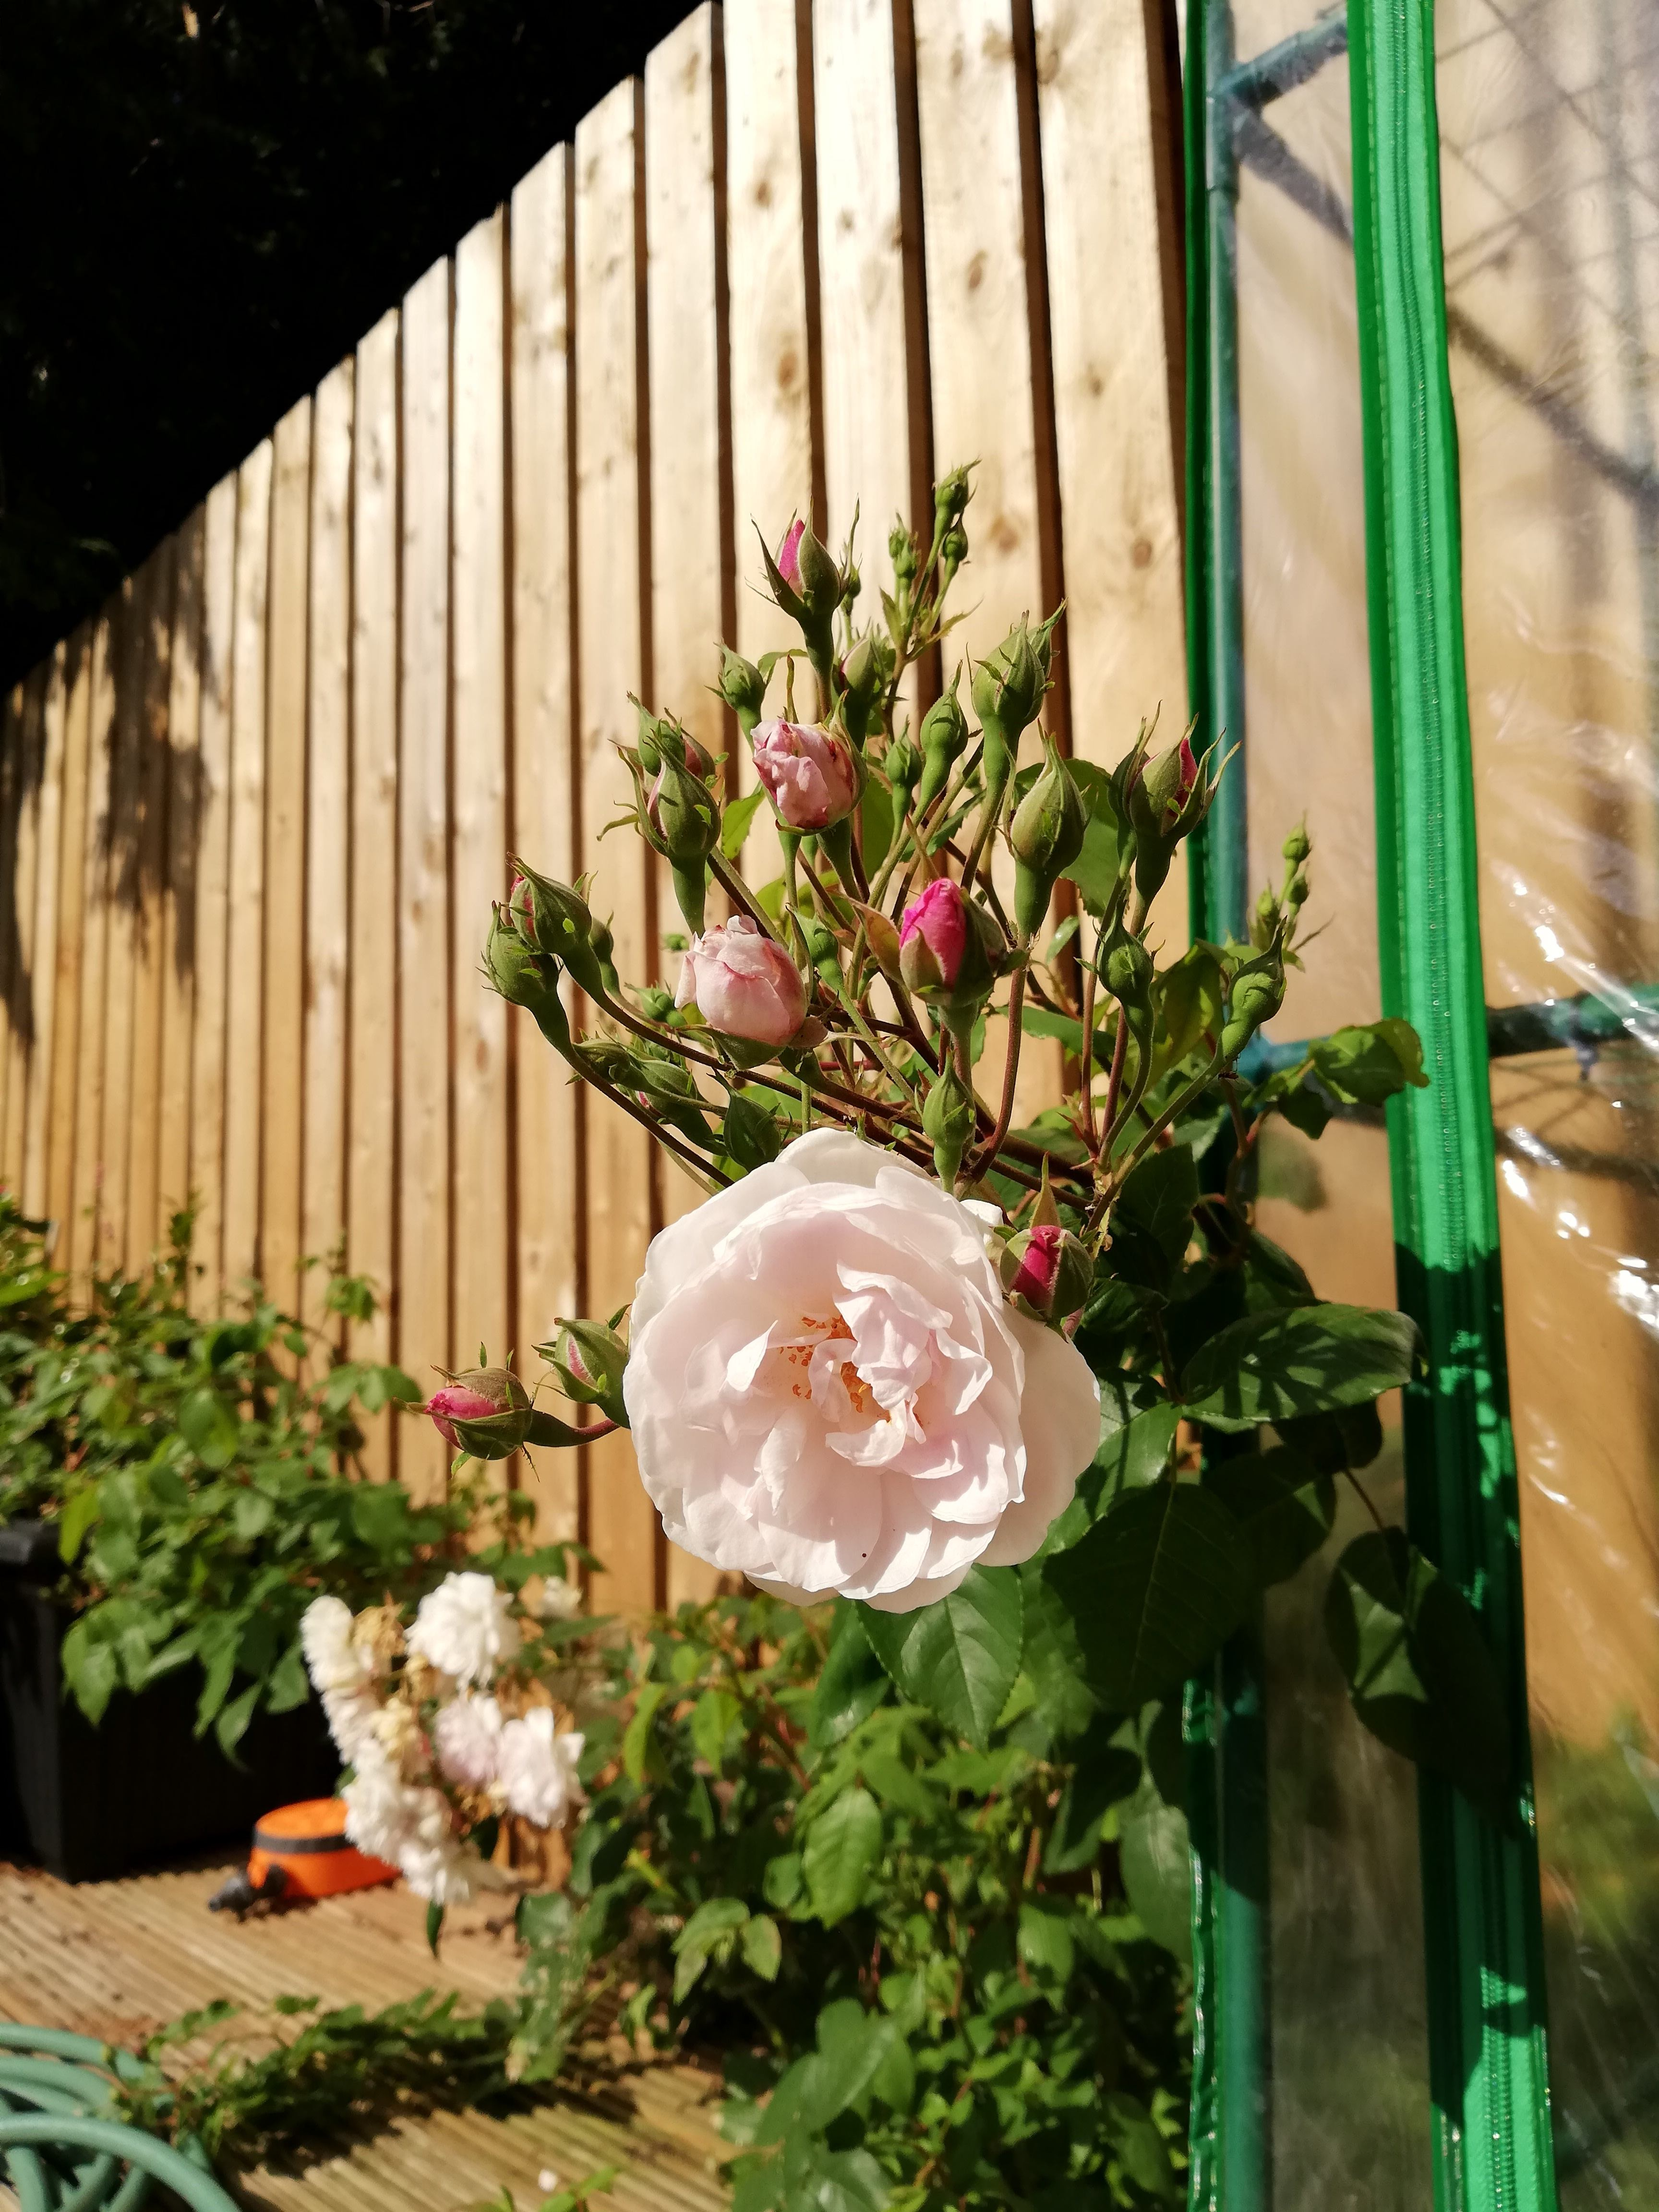 A pastel pink creeping rose with a wooden fence behind